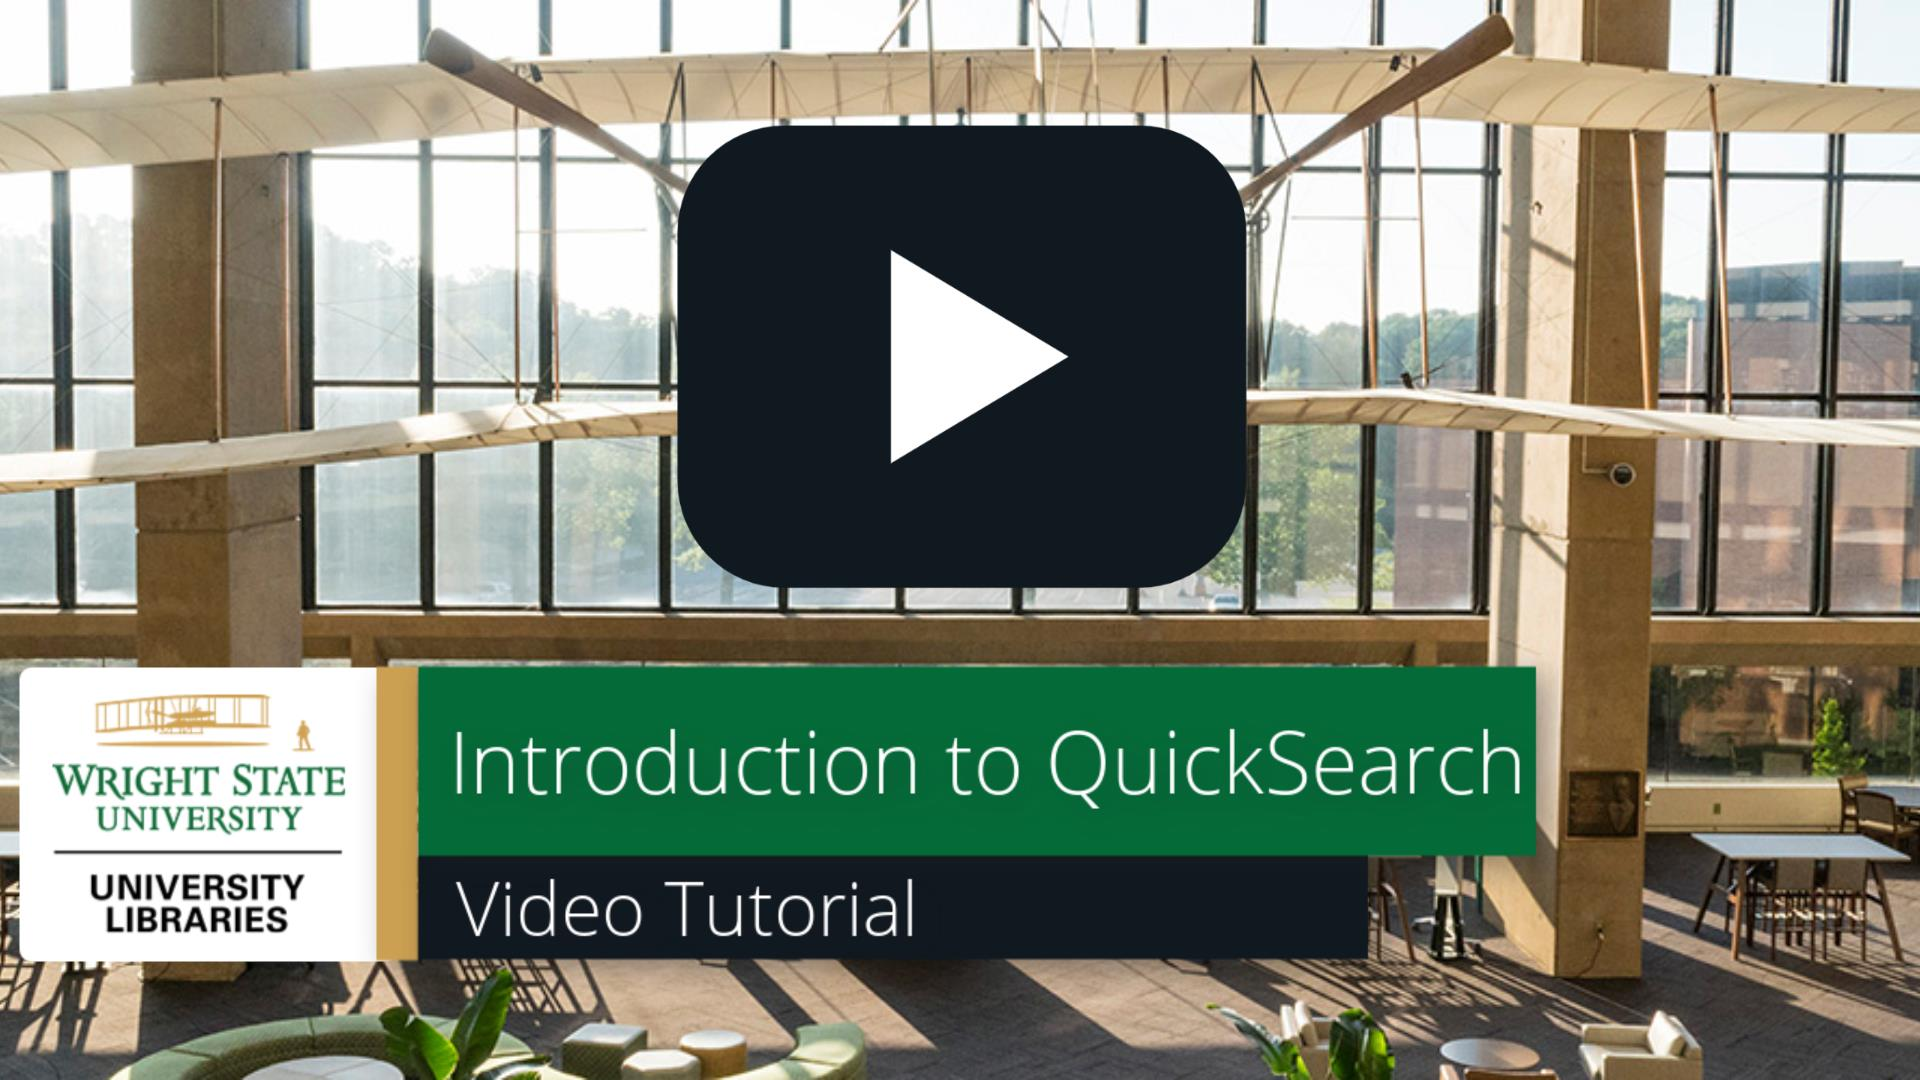 Introduction to QuickSearch: Video Tutorial